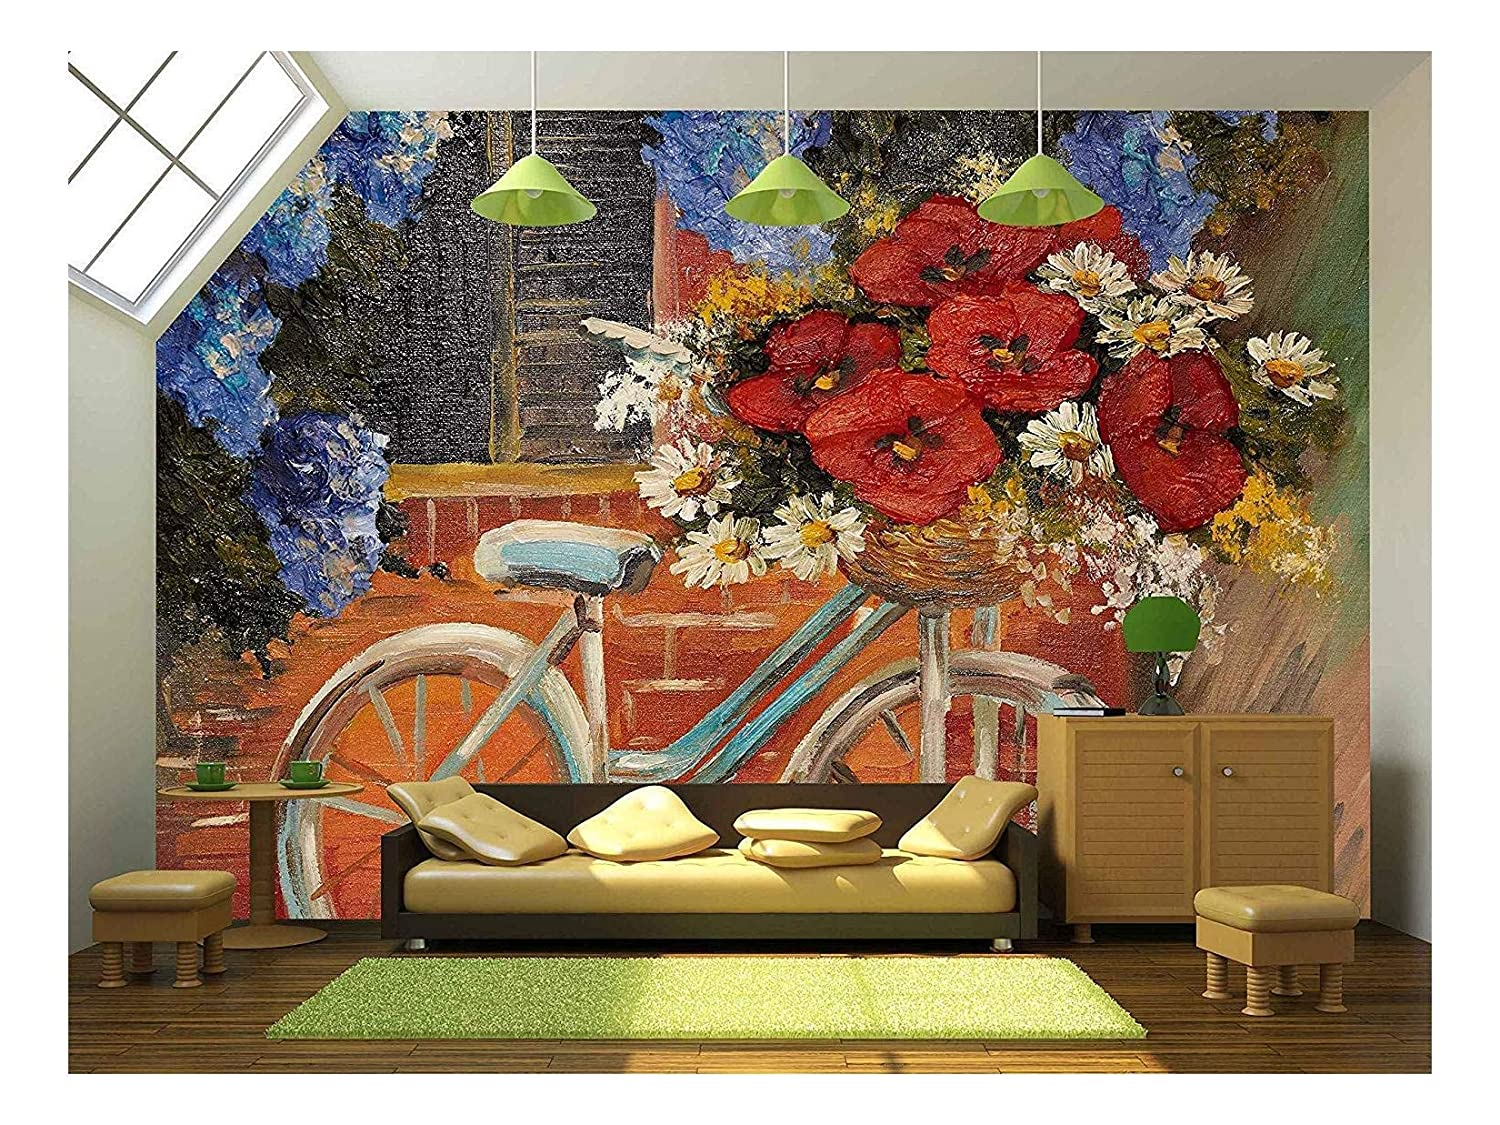 Oil Painting Flowers Near A Wall Bike With A Bouquet Of Flowers